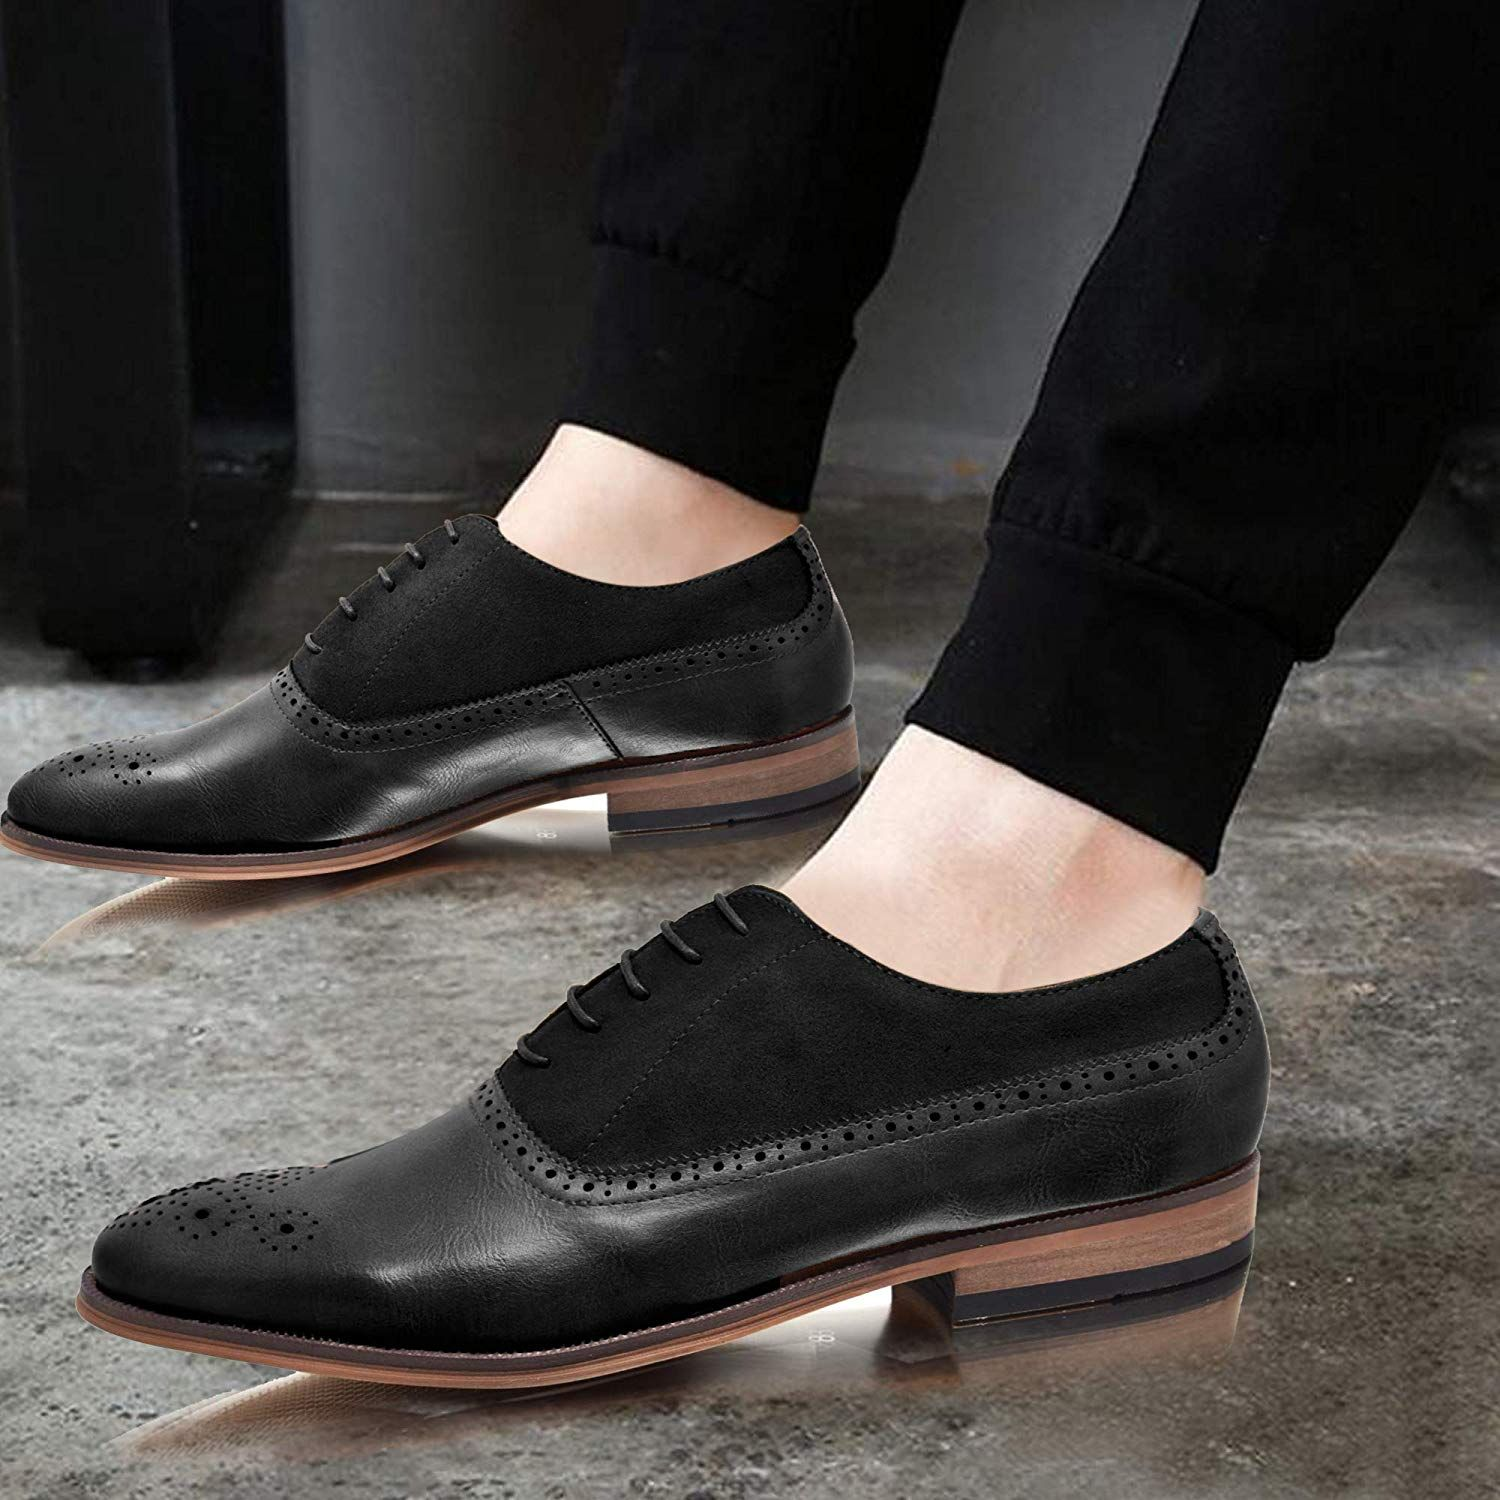 Mens Leather Shoes New Slip On Italian Smart Formal Wedding Office Shoes Size Modern Design Clothing, Shoes & Accessories Dress Shoes